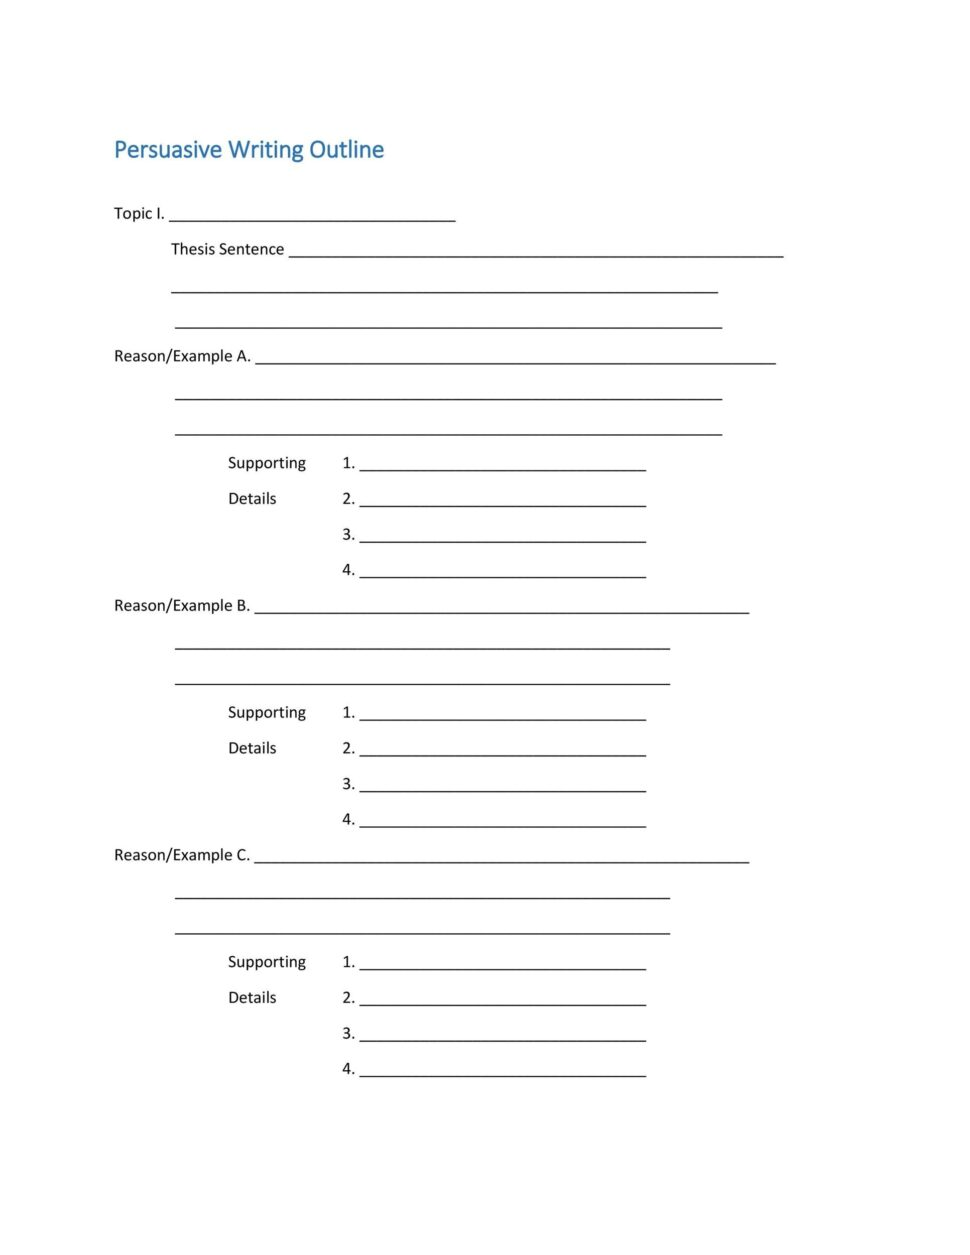 Large Size of Template Extended Essay Outline Persuasive Structure Layout